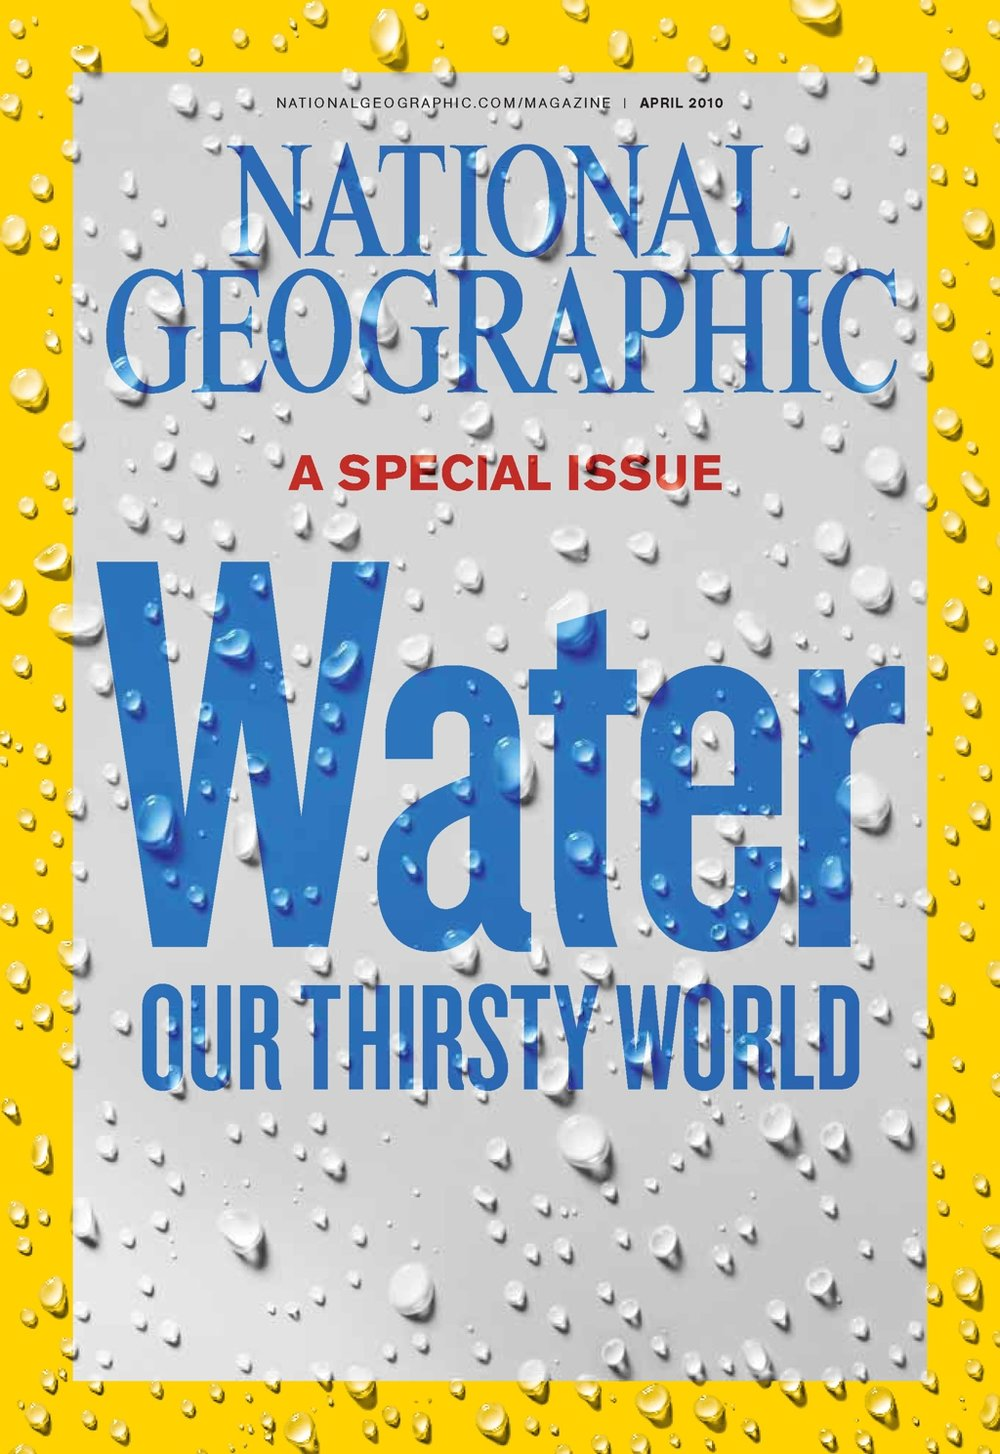 Water Issue 1-20-10 1-120.jpg